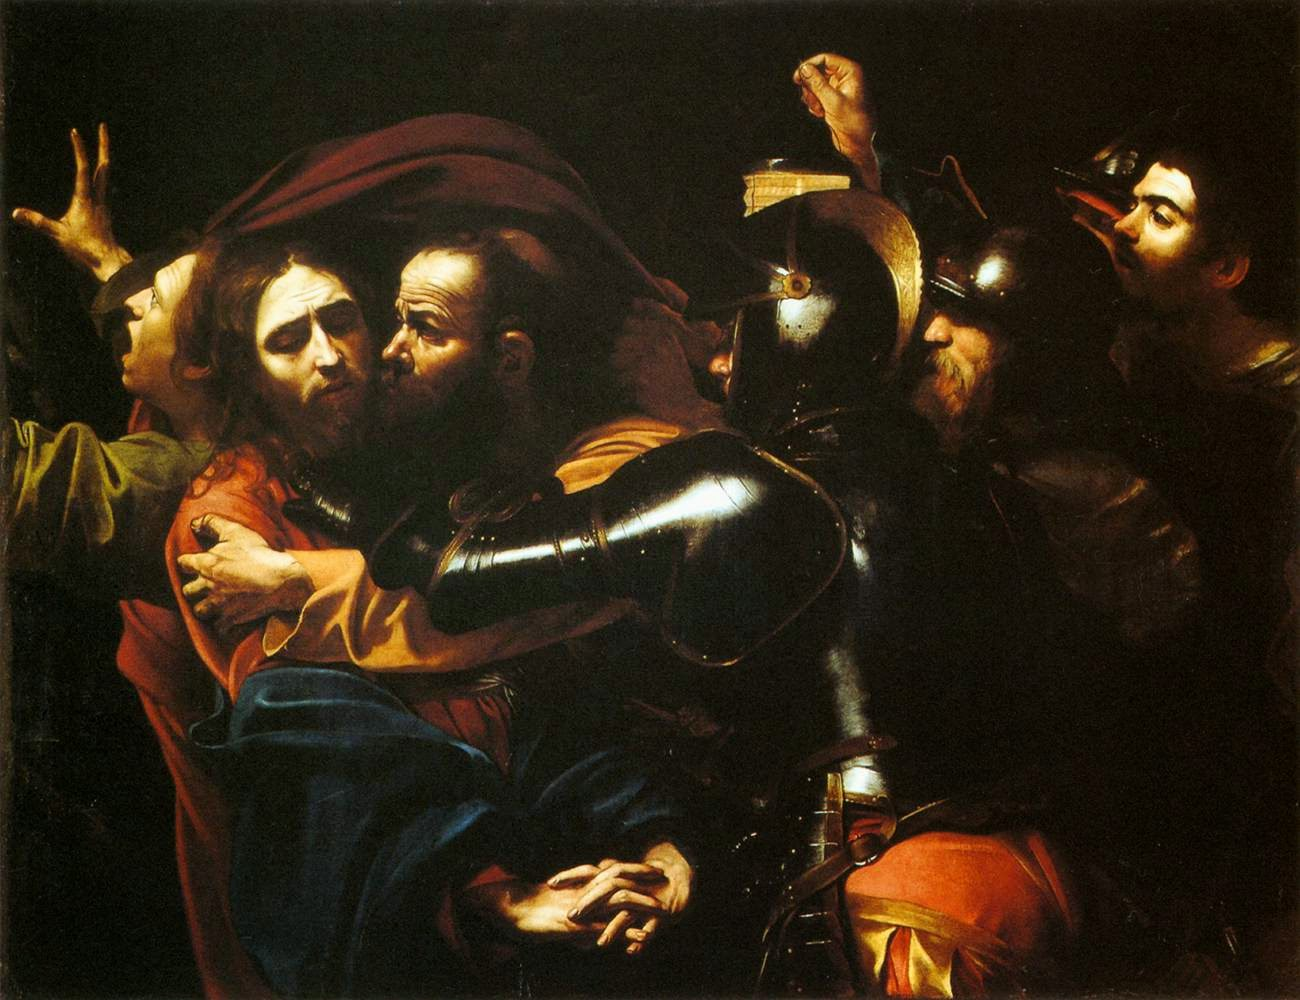 the taking of christ caravaggio The government declared the caravaggio when we look at the taking of christ, we project ourselves into it and - as baroque christianity expected.